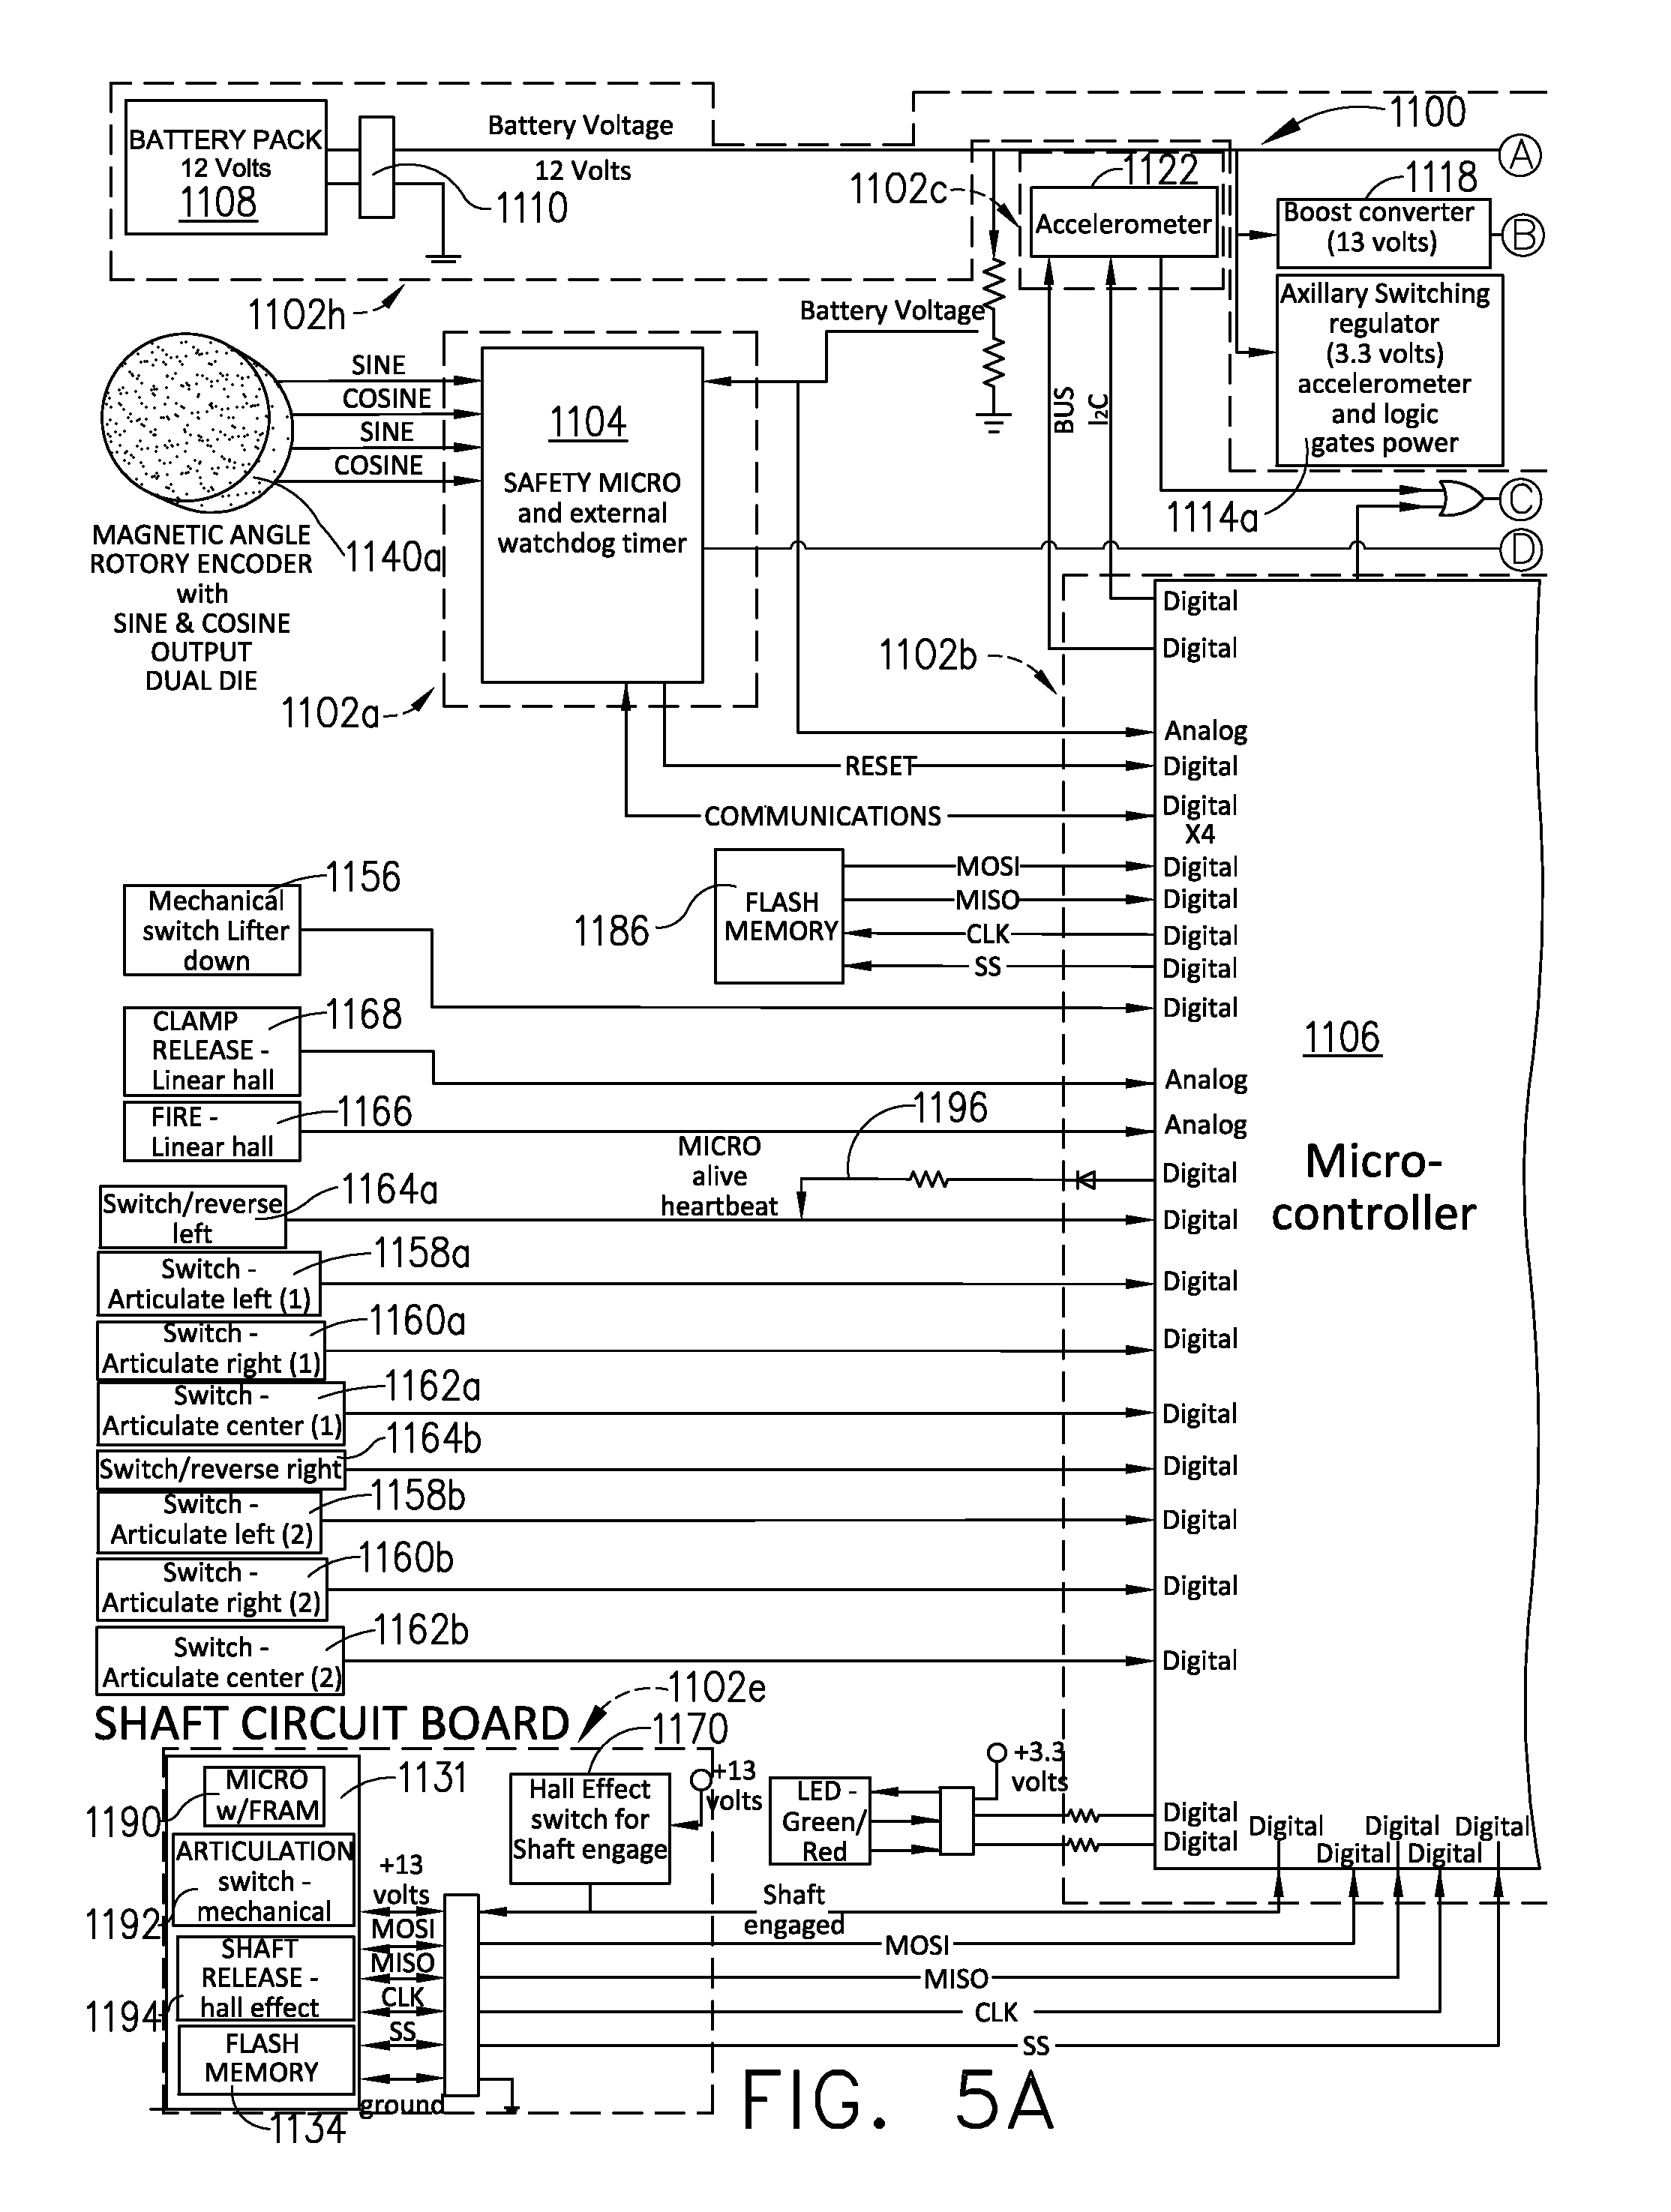 Us9733663b2 Power Management Through Segmented Circuit And 1979 Checkmate Wiring Diagram Variable Voltage Protection Google Patents